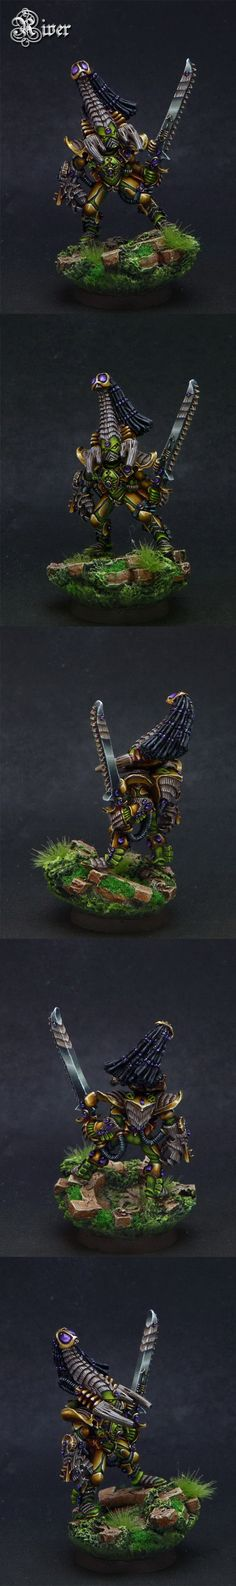 The Internet's largest gallery of painted miniatures, with a large repository of how-to articles on miniature painting Eldar 40k, Art Sites, The Grim, Warhammer 40000, Sculpture, Games Worshop, Geek Stuff, Lord, Miniatures